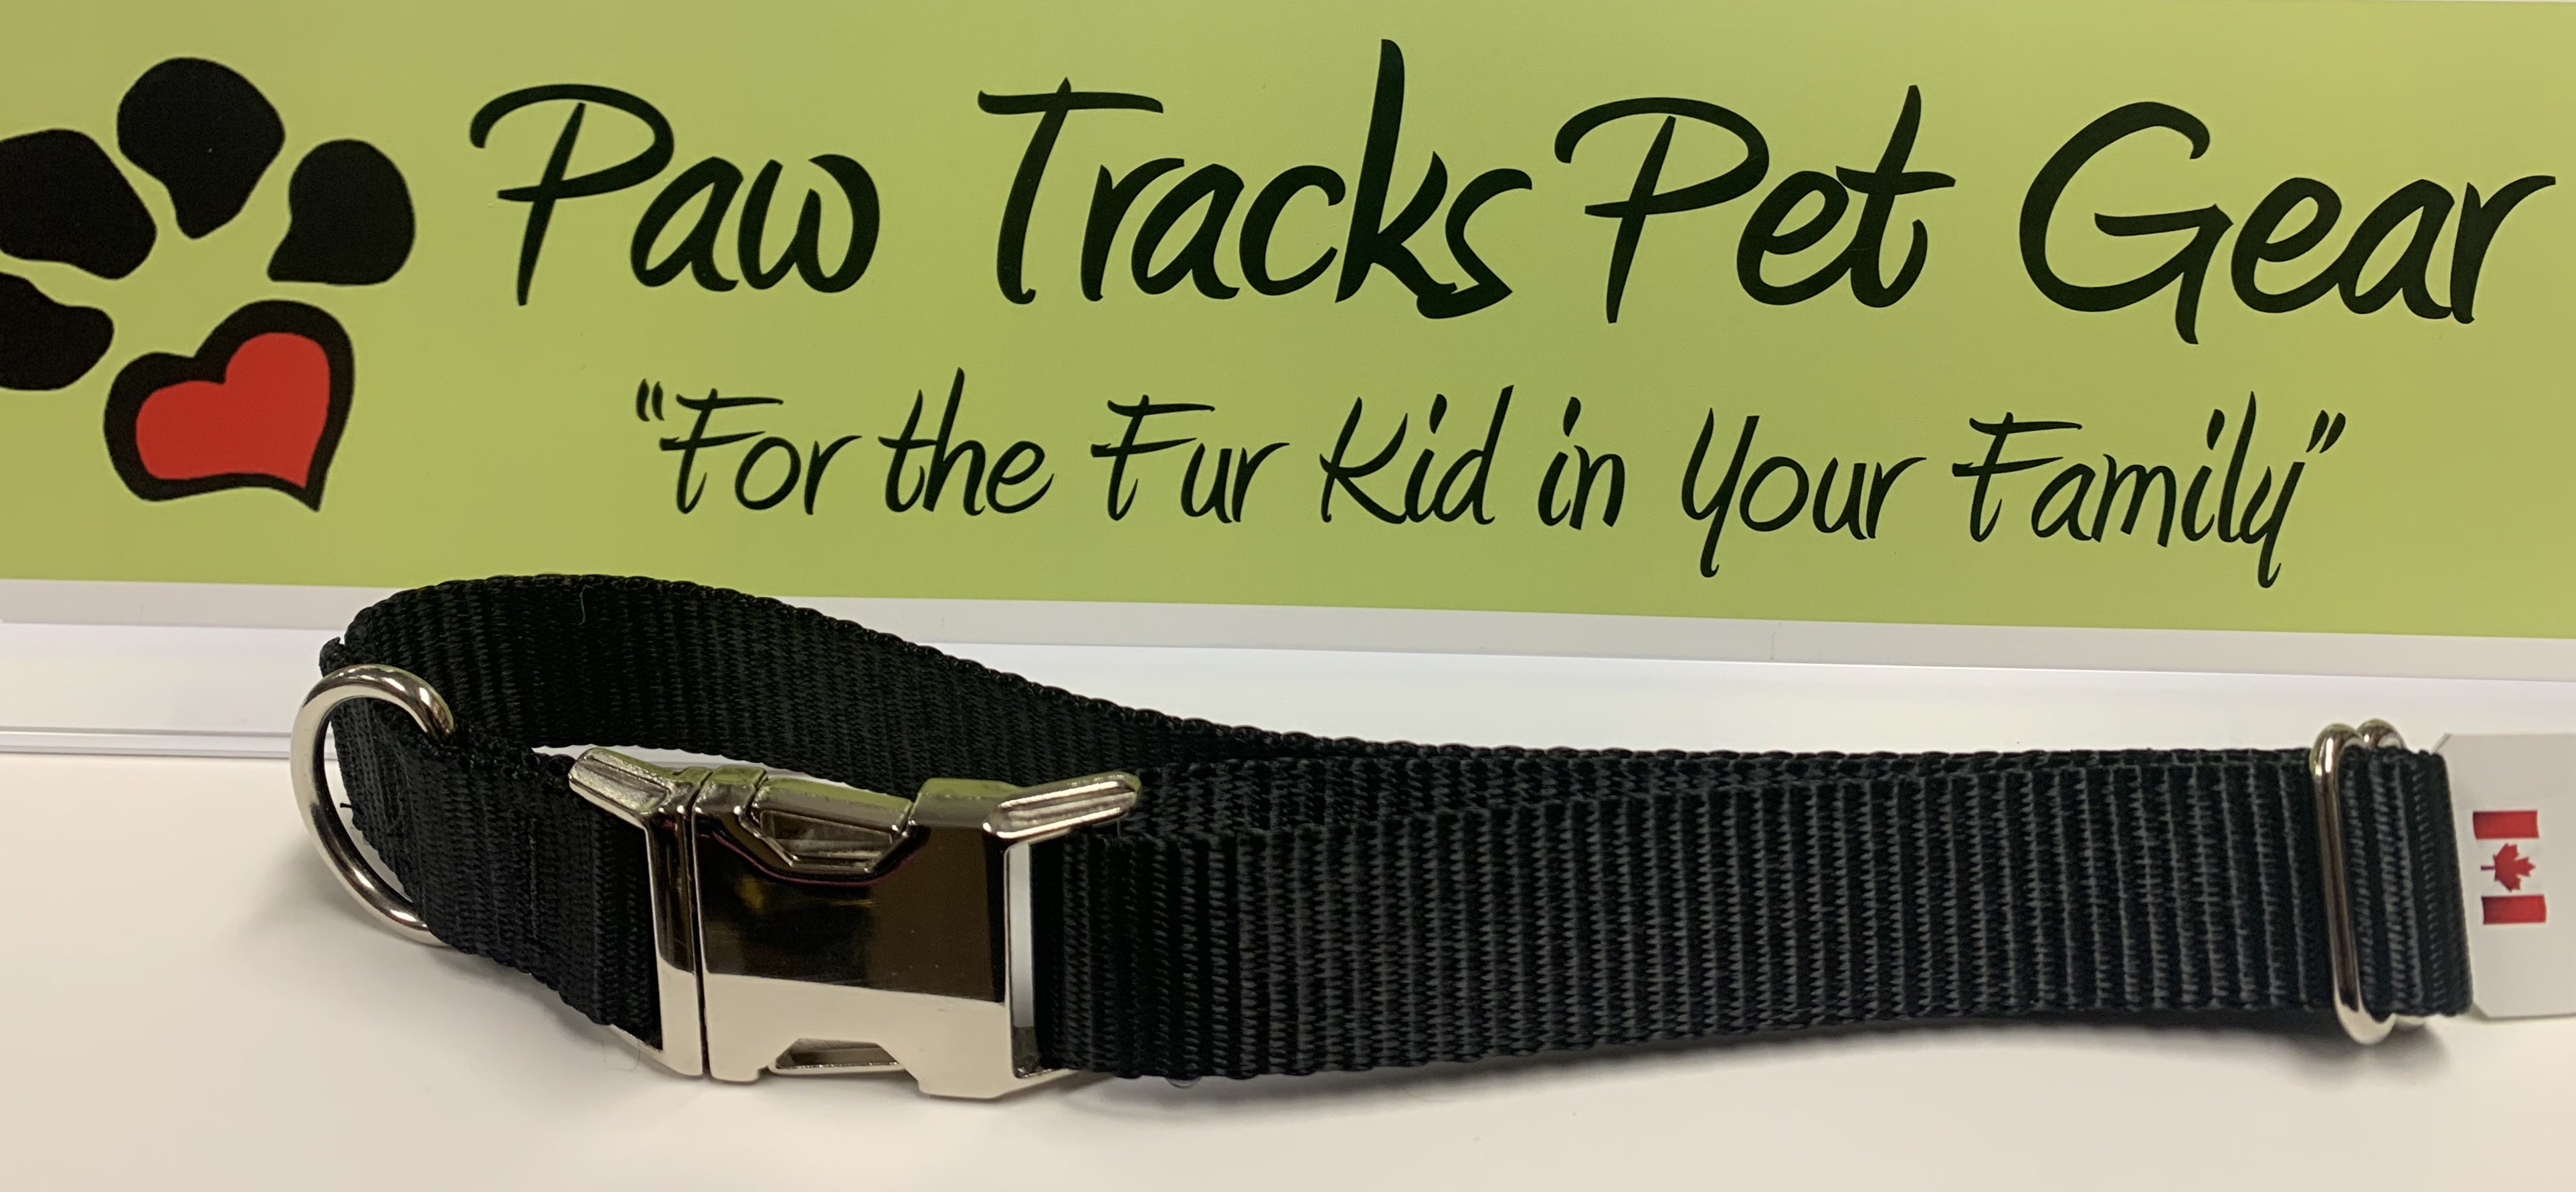 "1"" Metal Buckle Dog Collar (14-22"")  - Black"